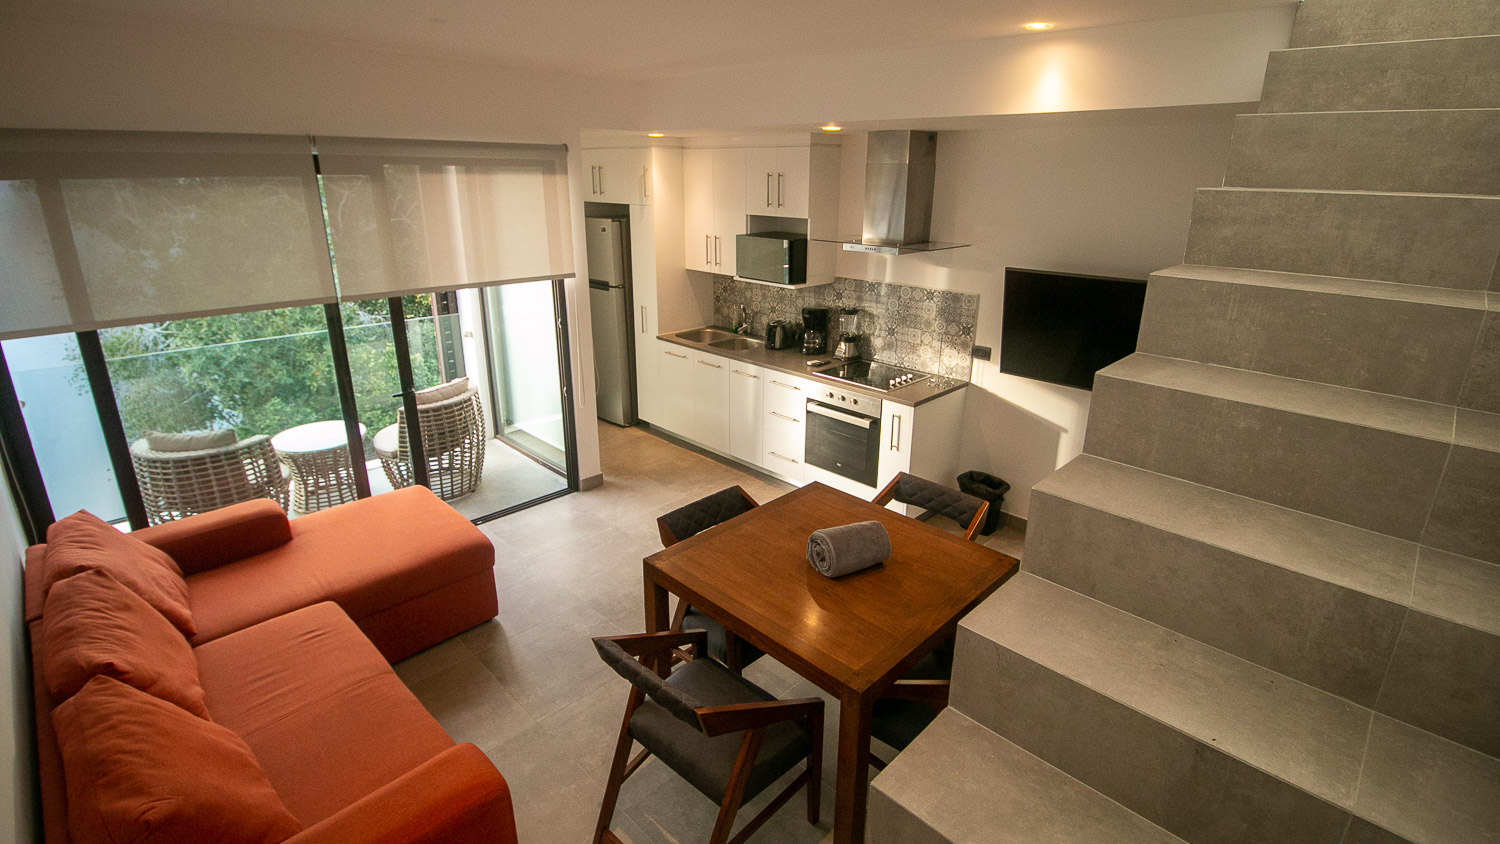 19666 Fully furnished condo to enjoy the wonders of  - Condo